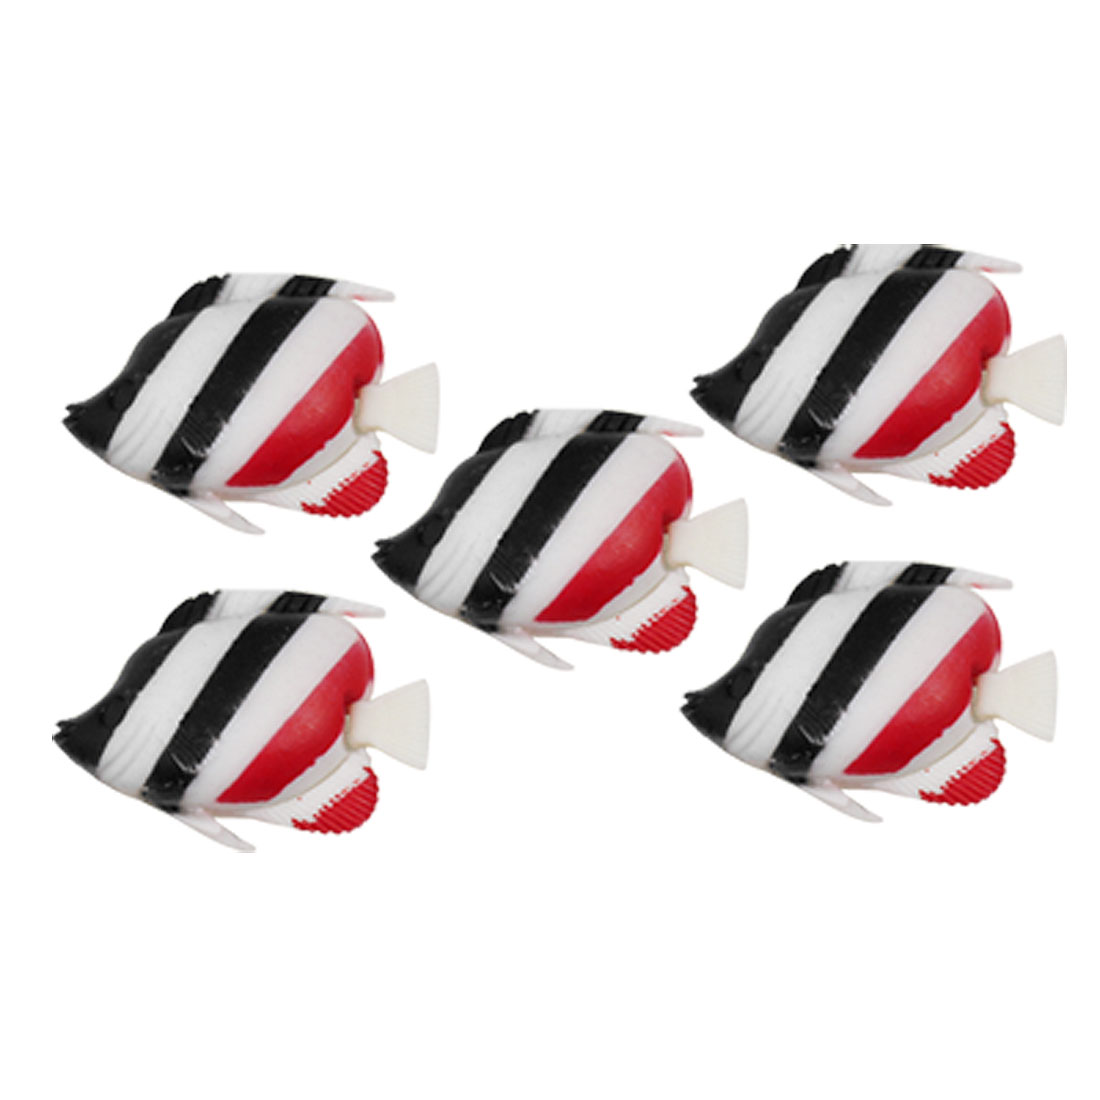 5pcs Black Red Stripes Plastic Wiggling Tail Floating Fish for Aquarium